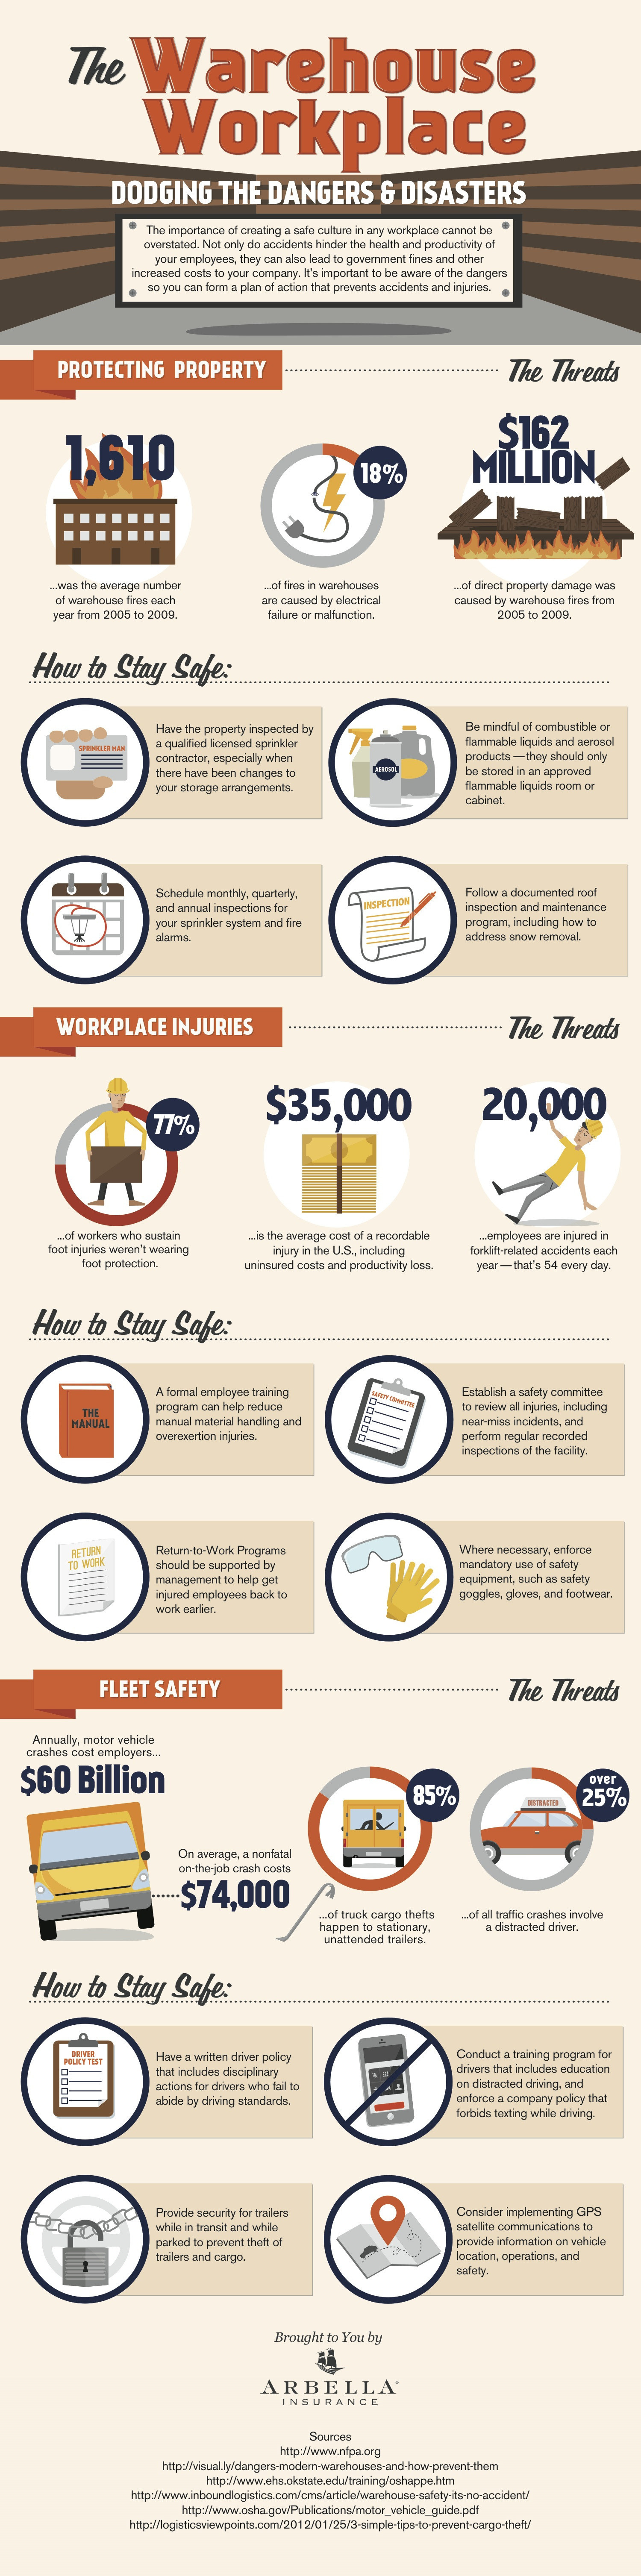 The Warehouse Workplace: Dodging the Dangers and Disasters Infographic